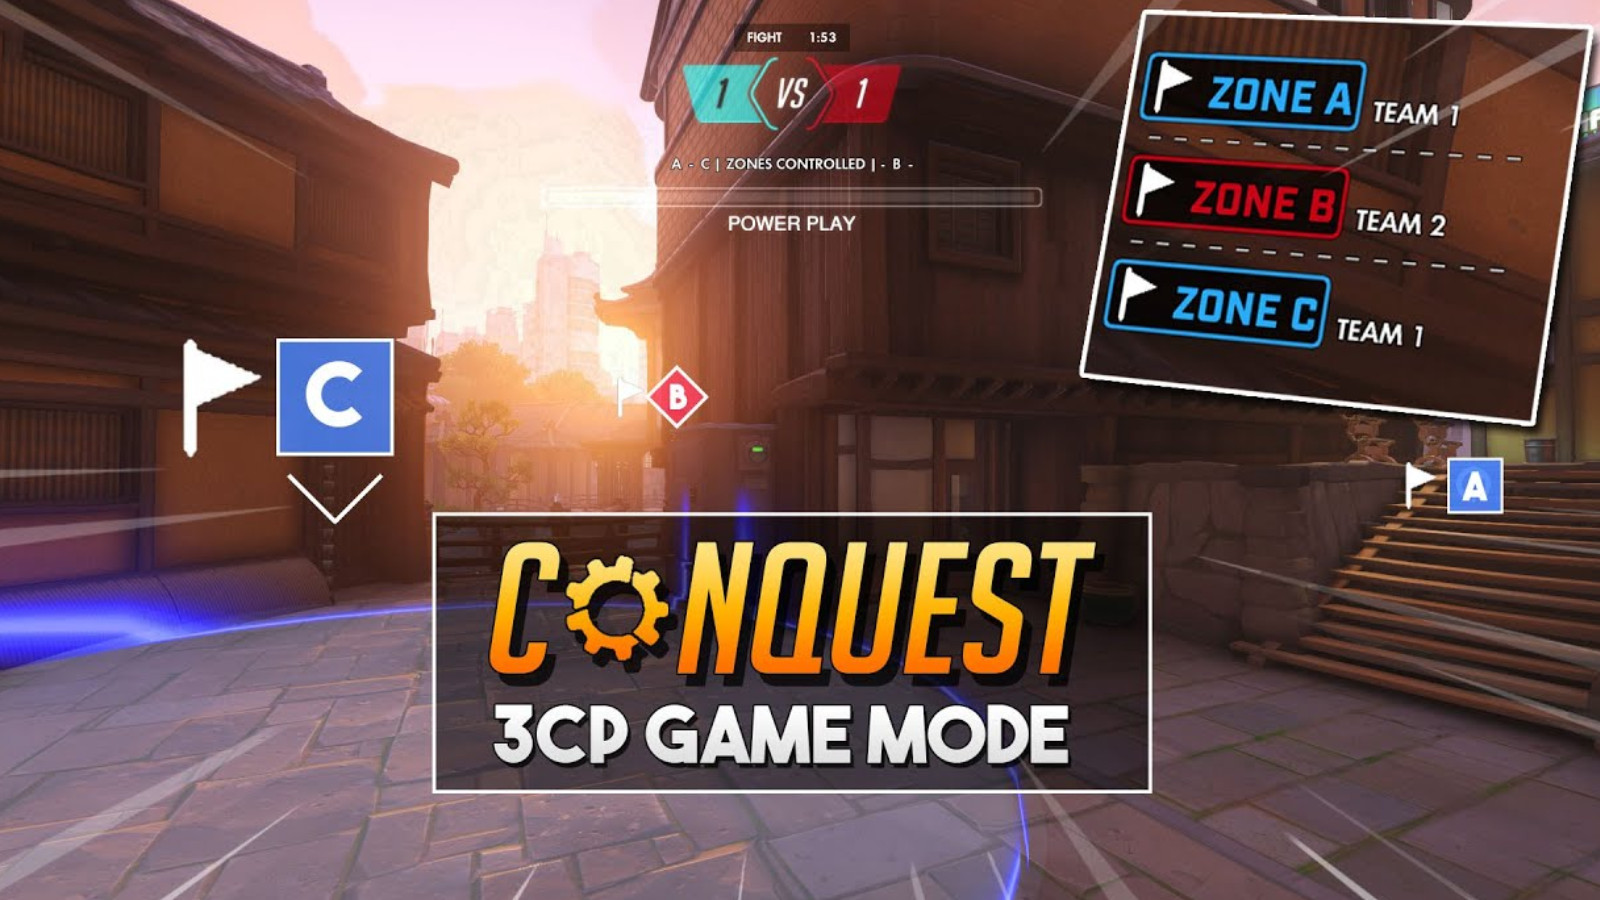 Overwatch conquest mode